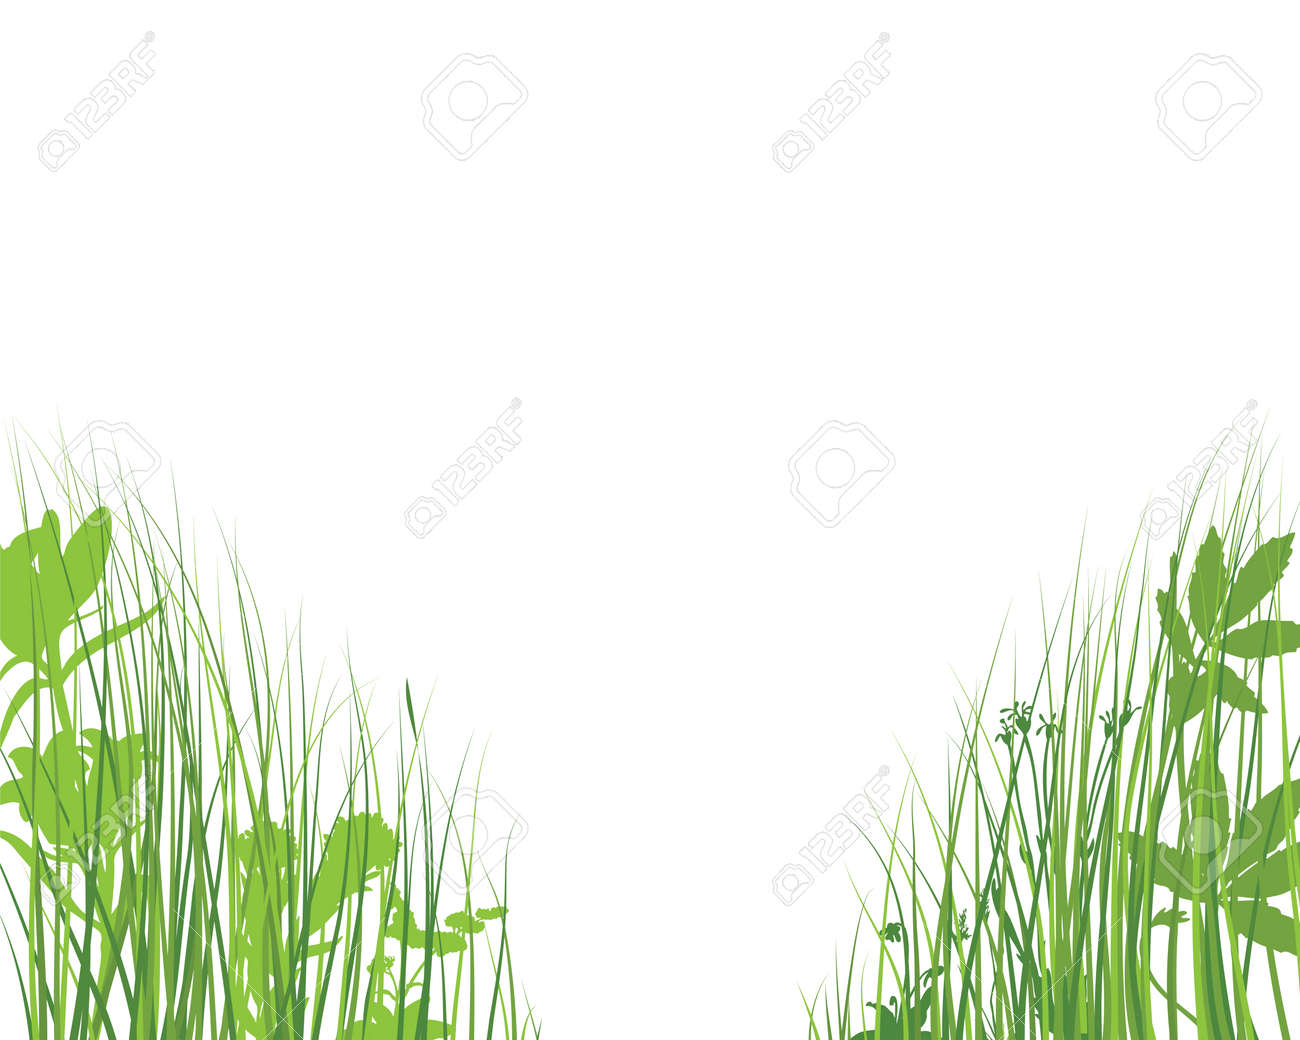 Green spring meadow grass. Fresh color plants, seasonal growth grass, separated botanical elements, herbs. Natural lawn bushes, floral border. Vector Illustration. - 167414797